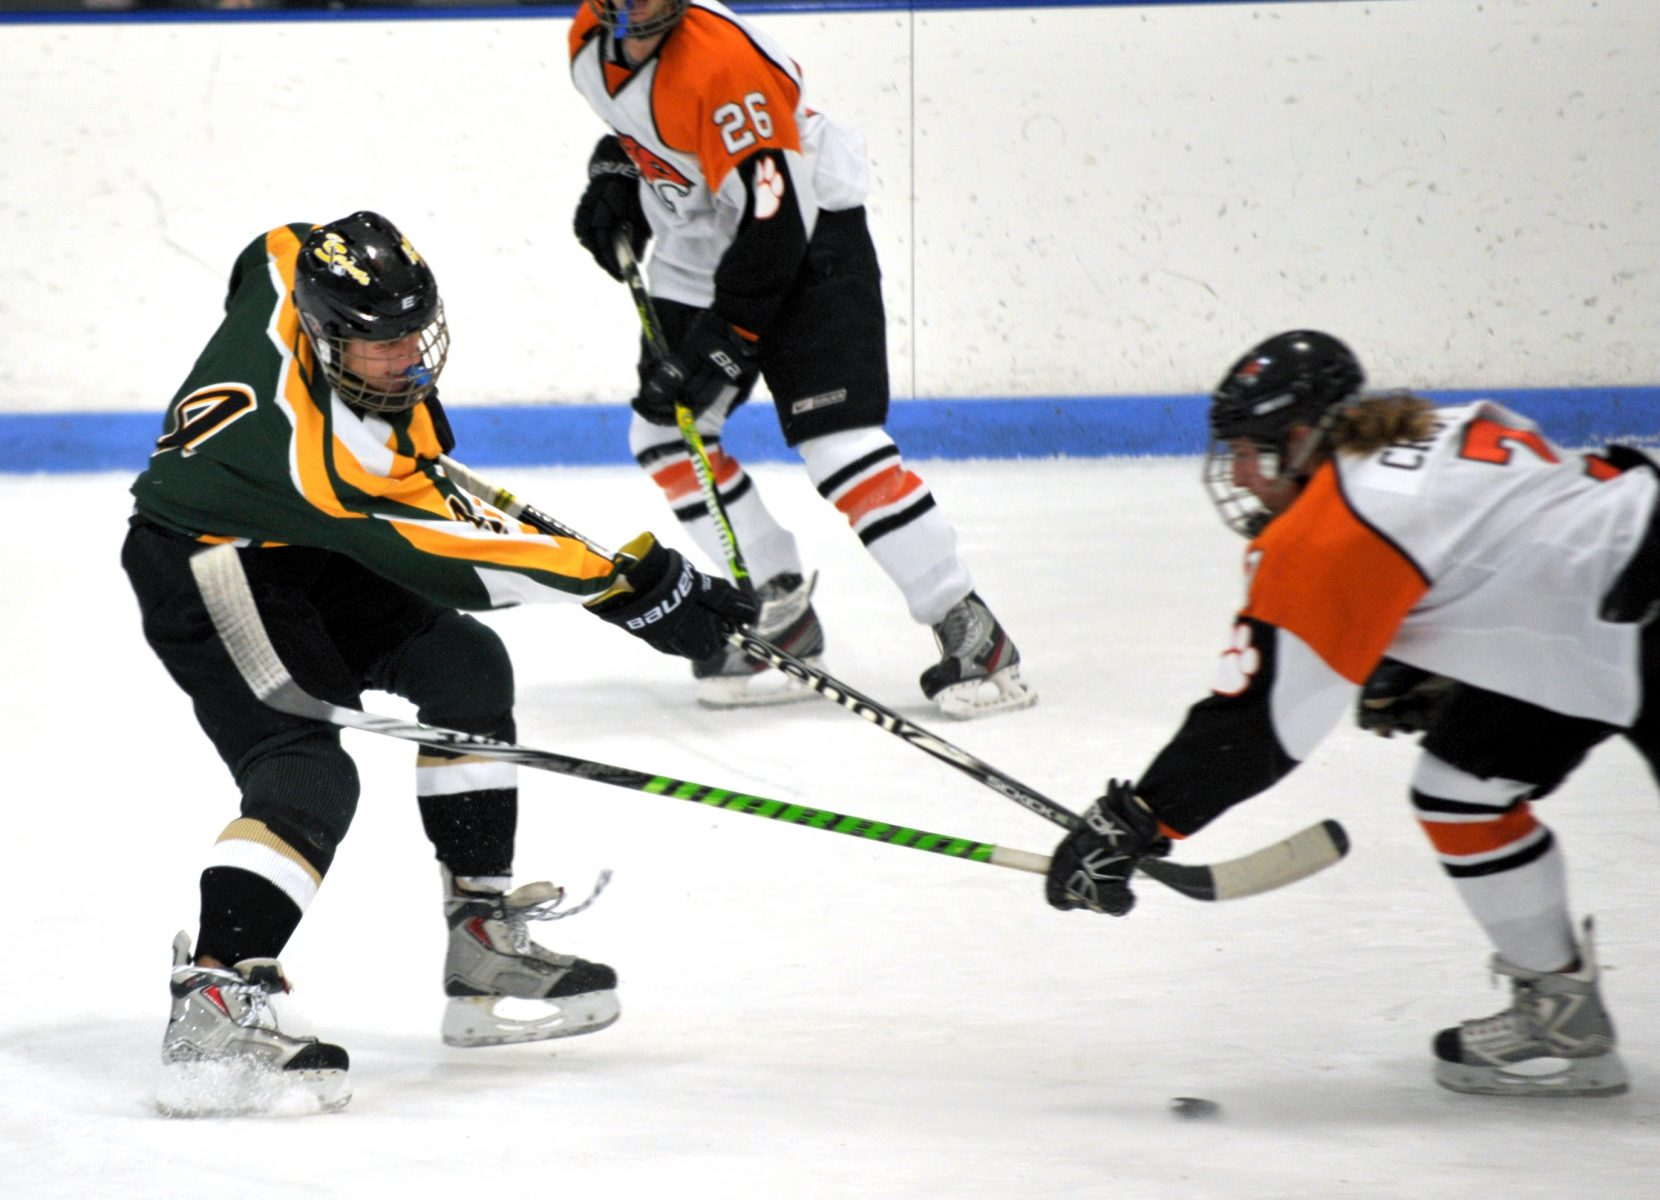 St. Mary's Jake Neilsen, left, battles South Hadley's Tom Crotty. (Photo by chief photographer Frederick Gore)